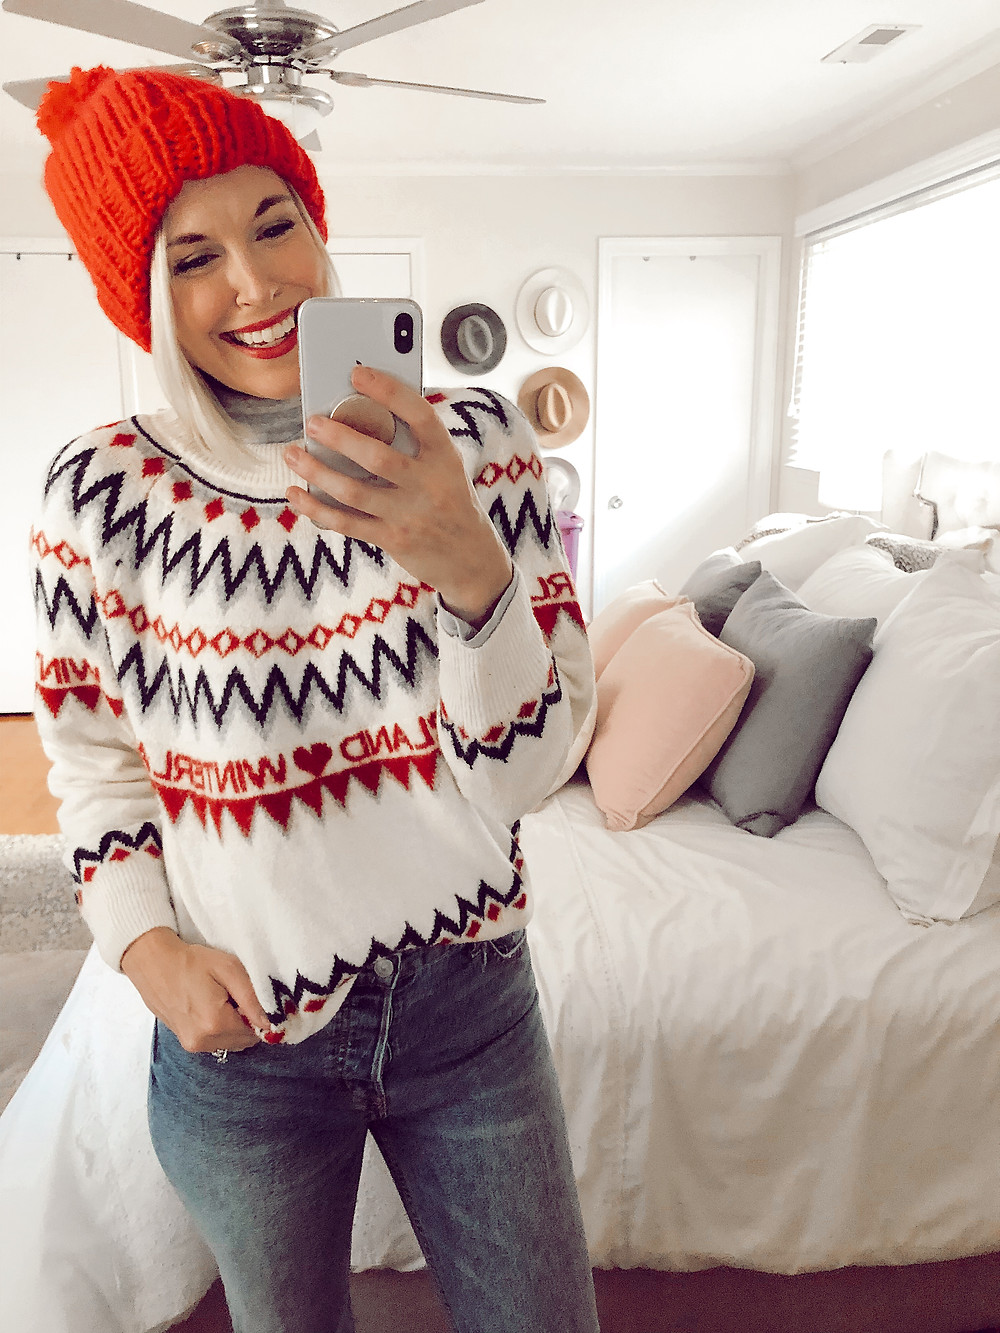 Outfit selfie in H&M Christmas sweater layered over gray turtleneck and jeans with a red knit beanie, fashion blog, casual fall outfit ideas